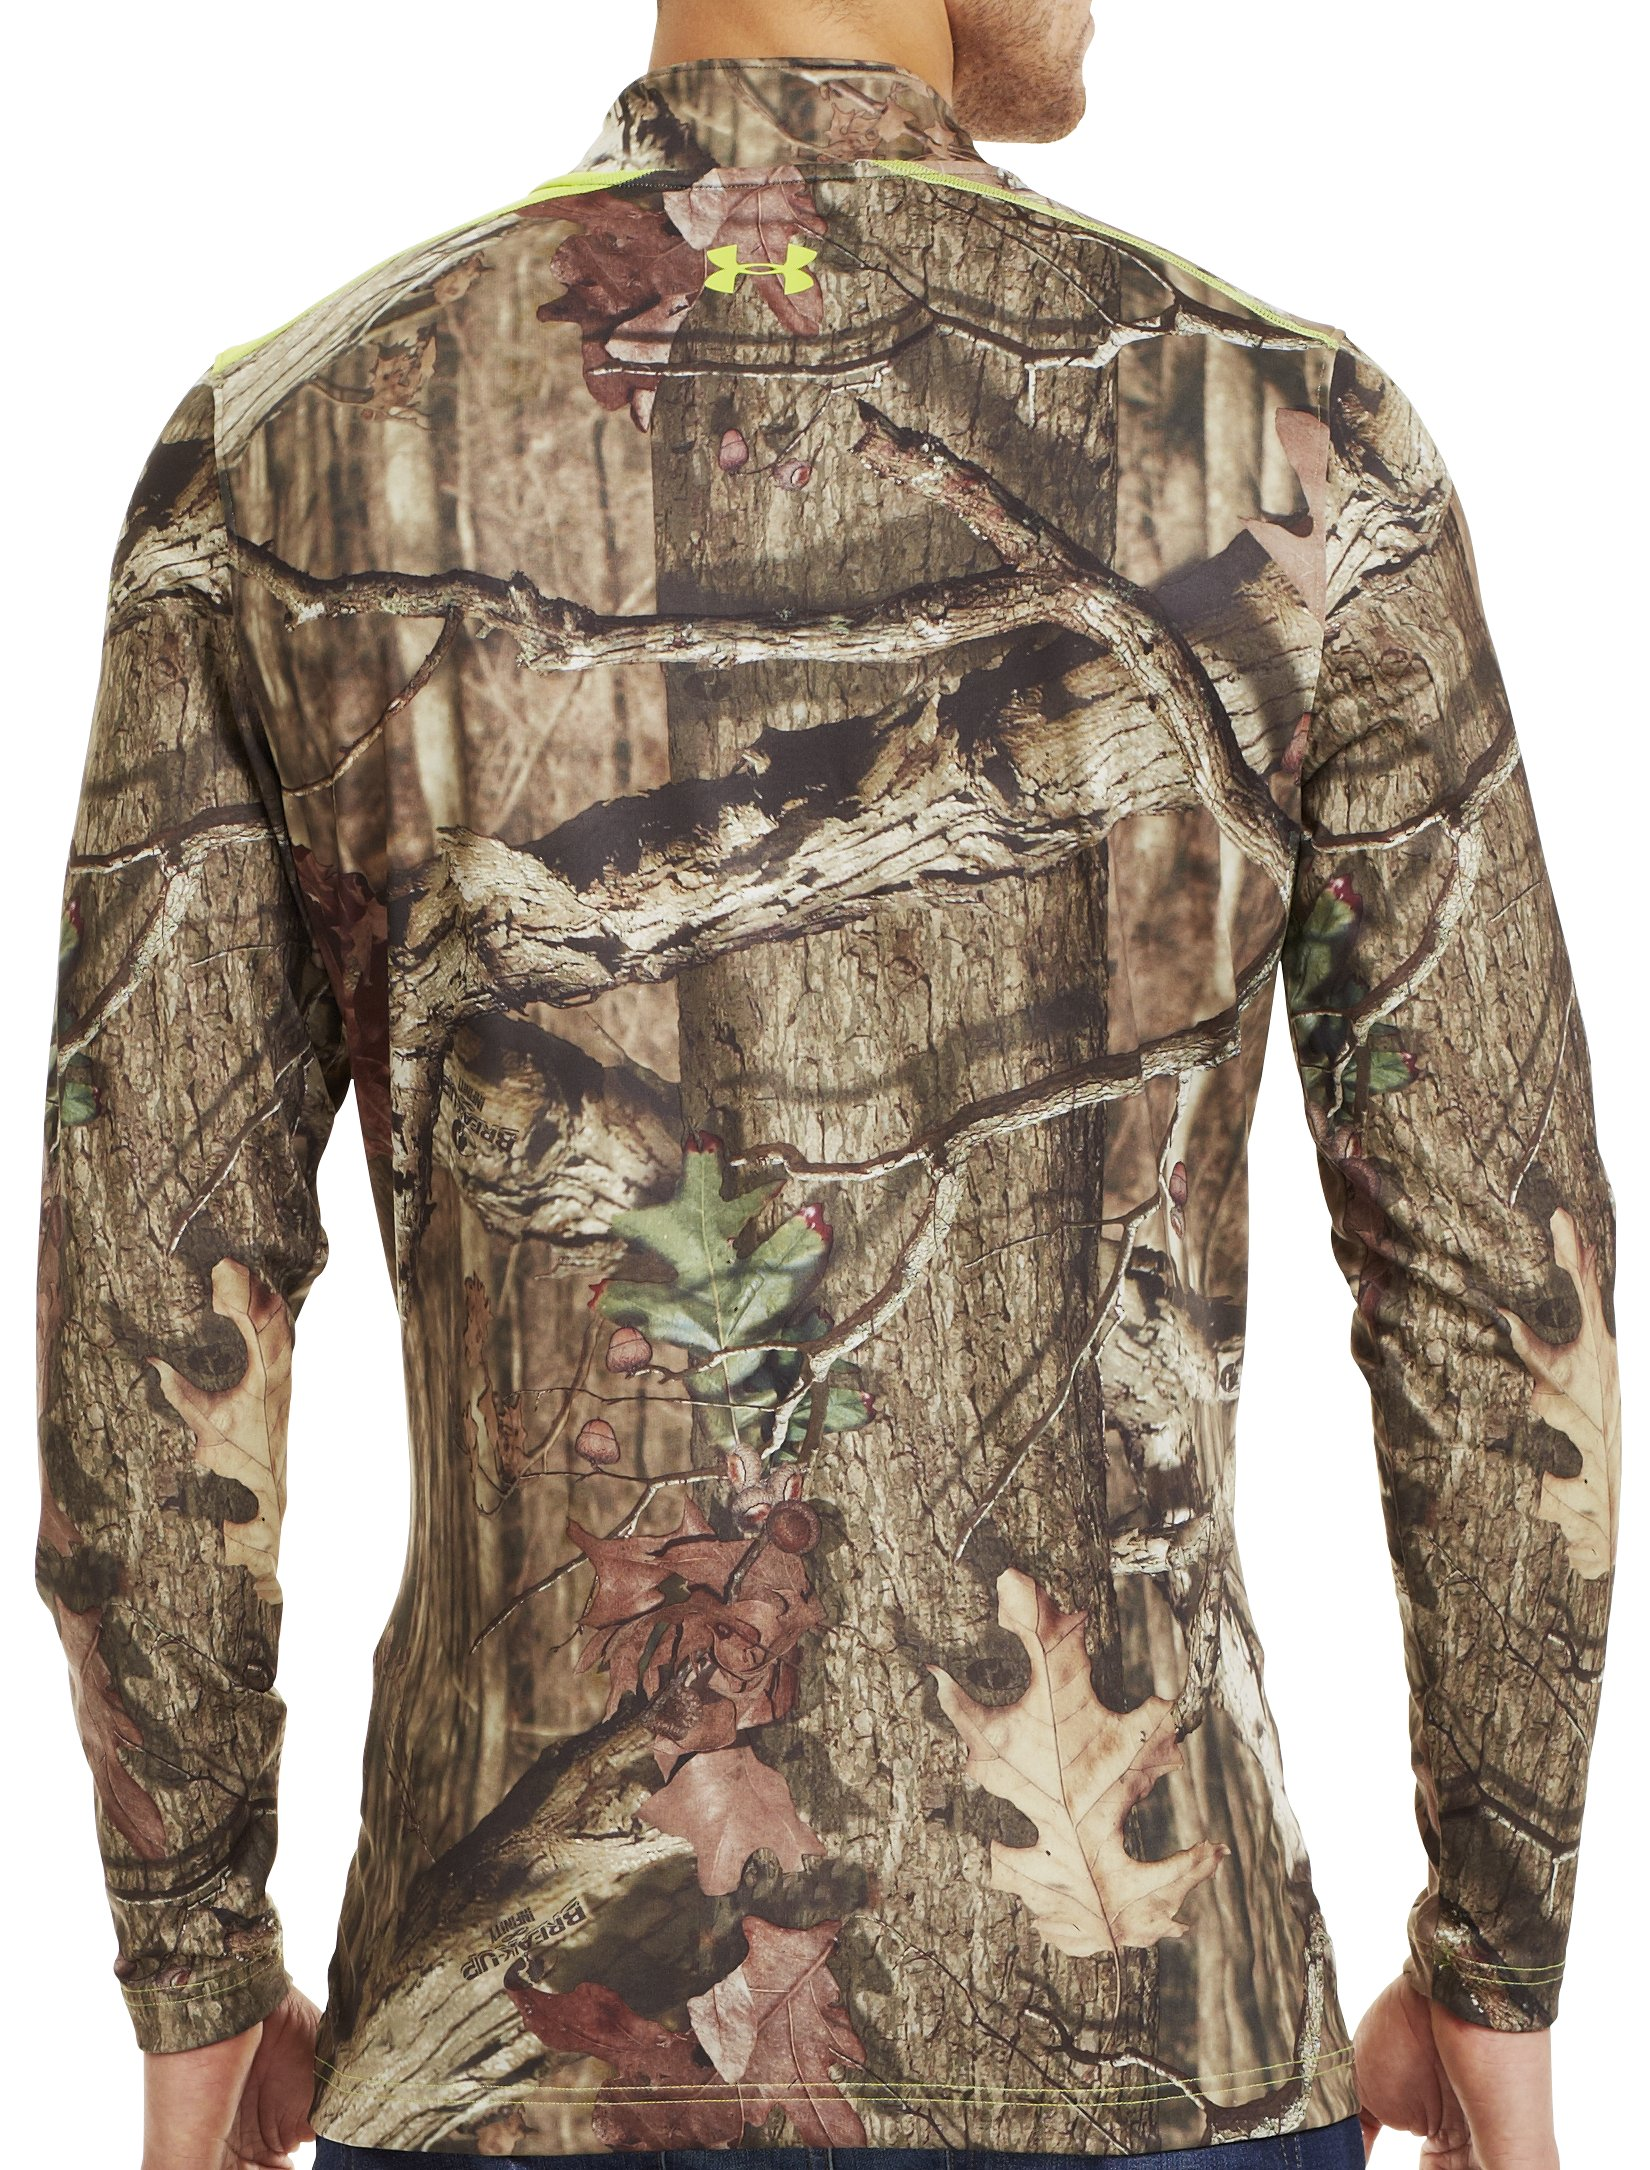 Men's ColdGear® Evo Scent Control Fitted ¼ Zip, Mossy Oak Break-Up Infinity, Back